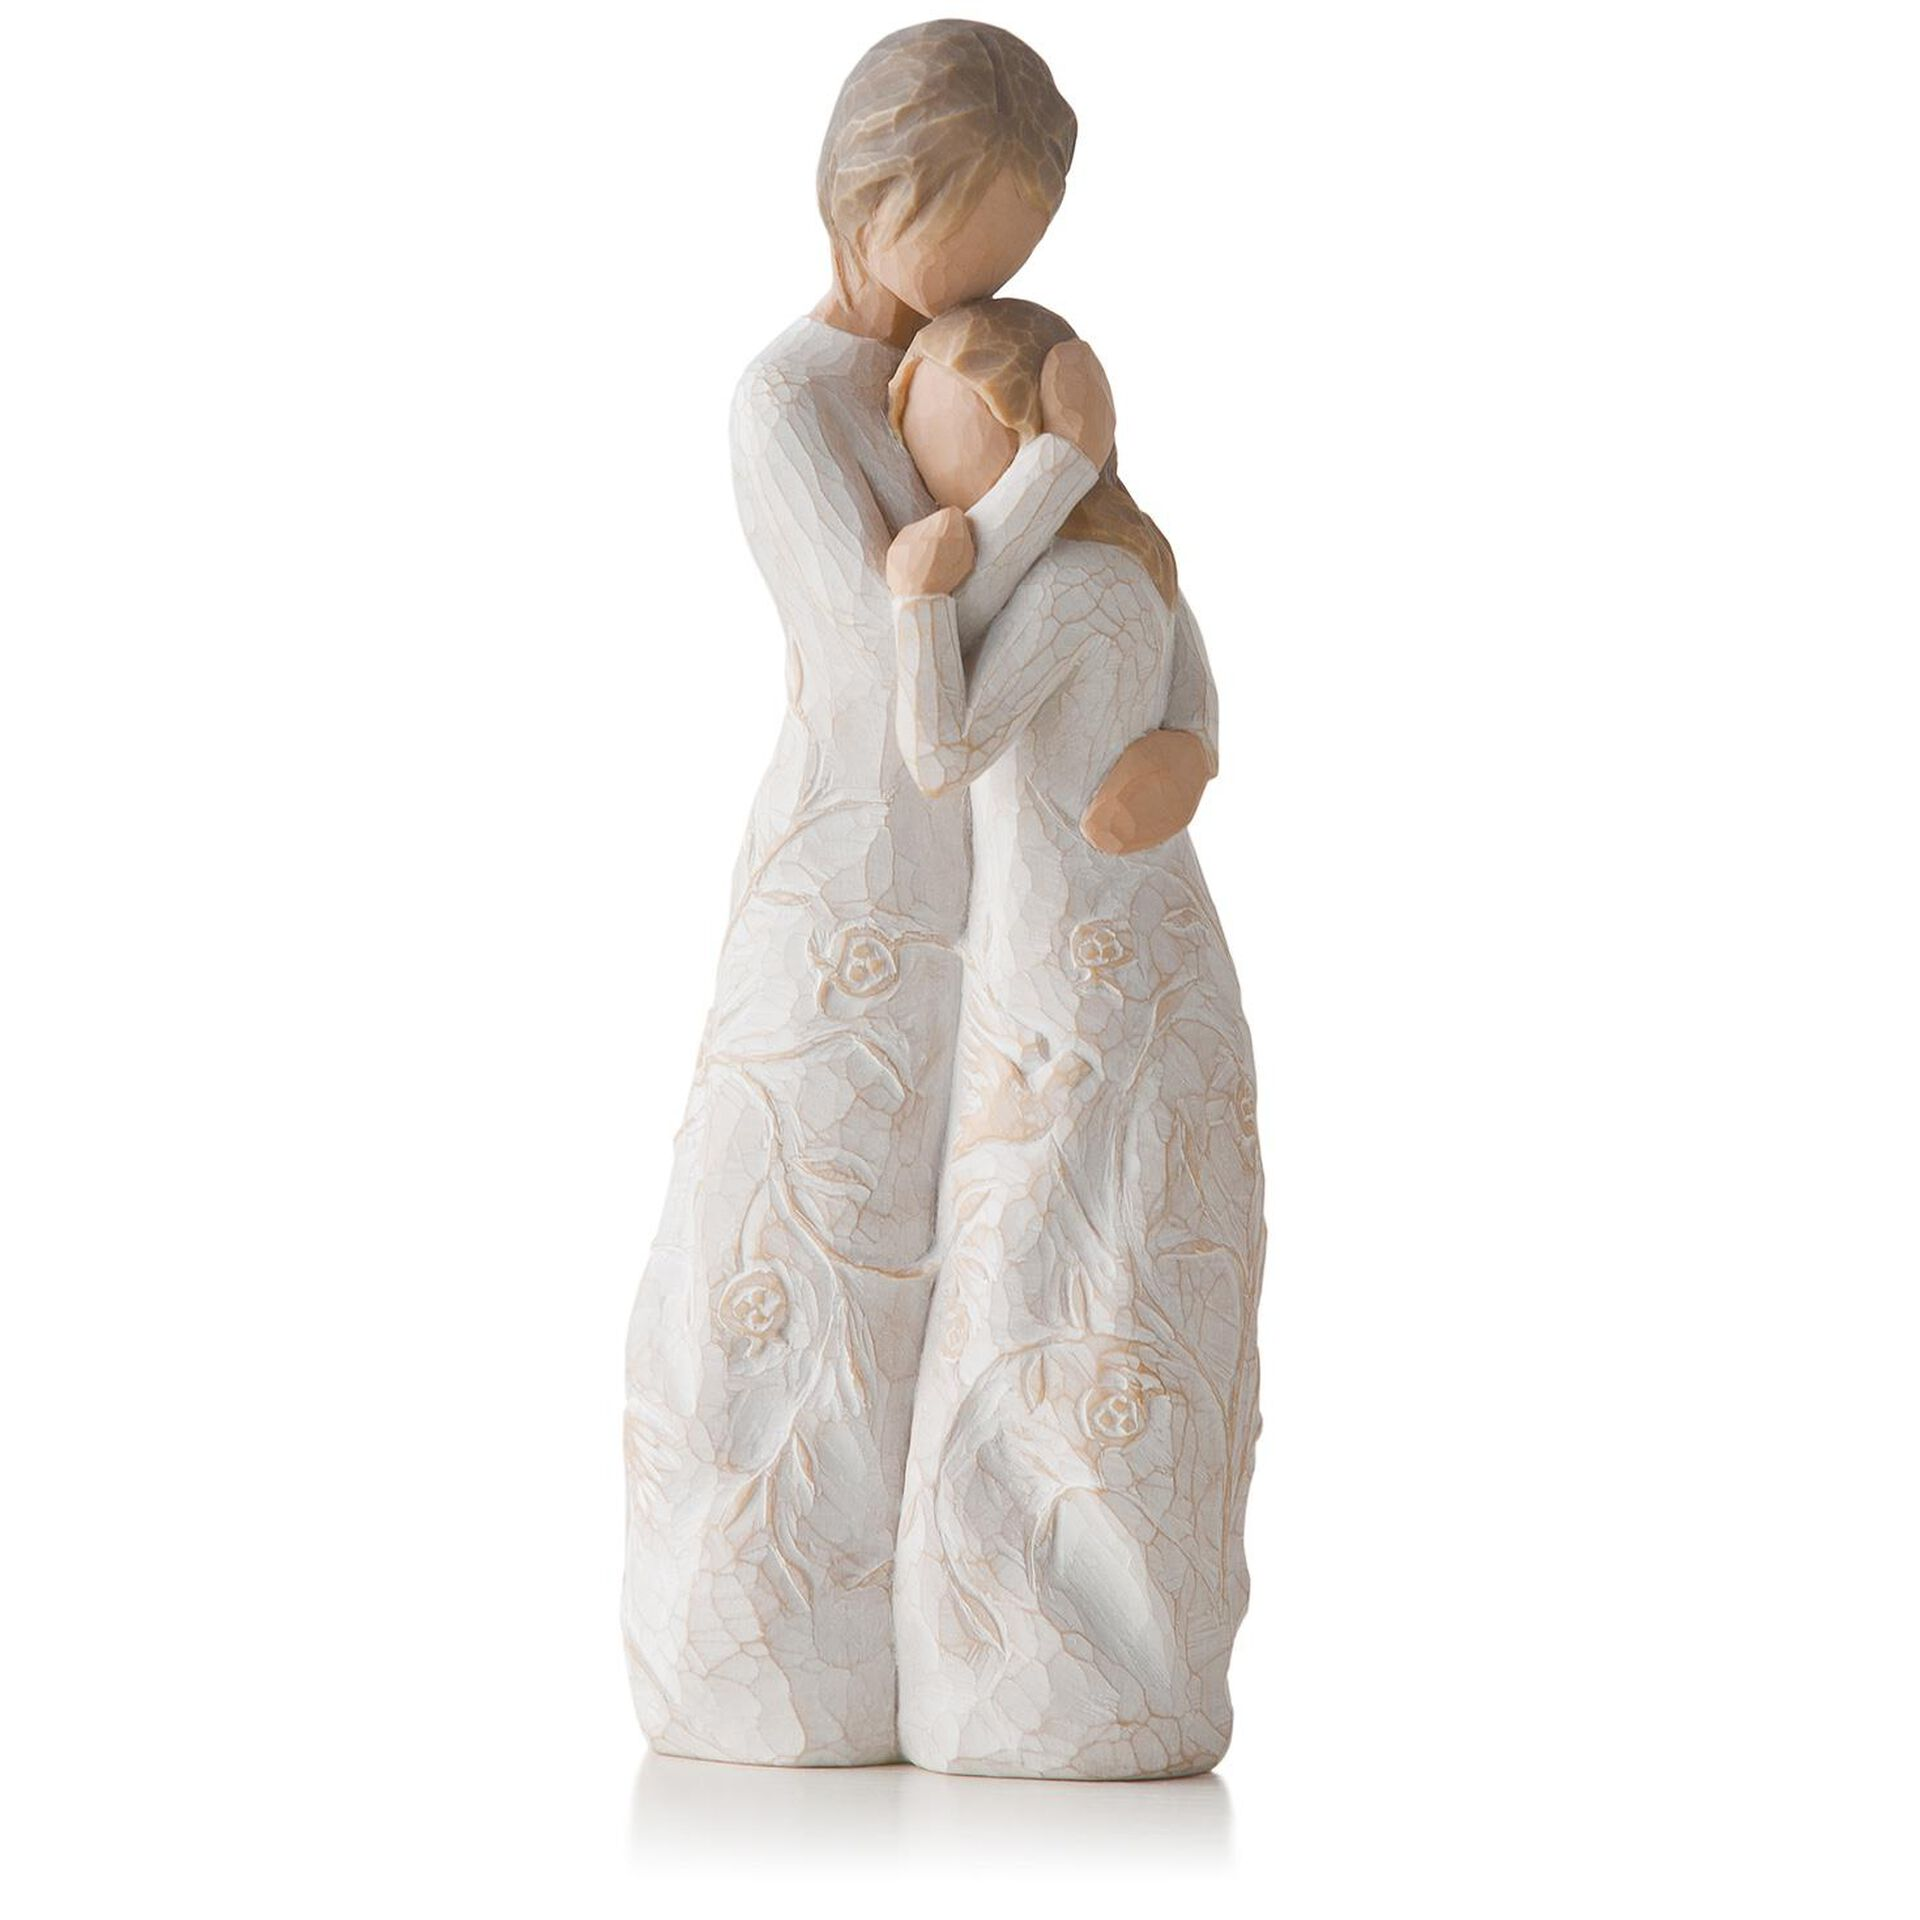 Willow Tree® Close to Me Mother Daughter Figurine - Figurines - Hallmark